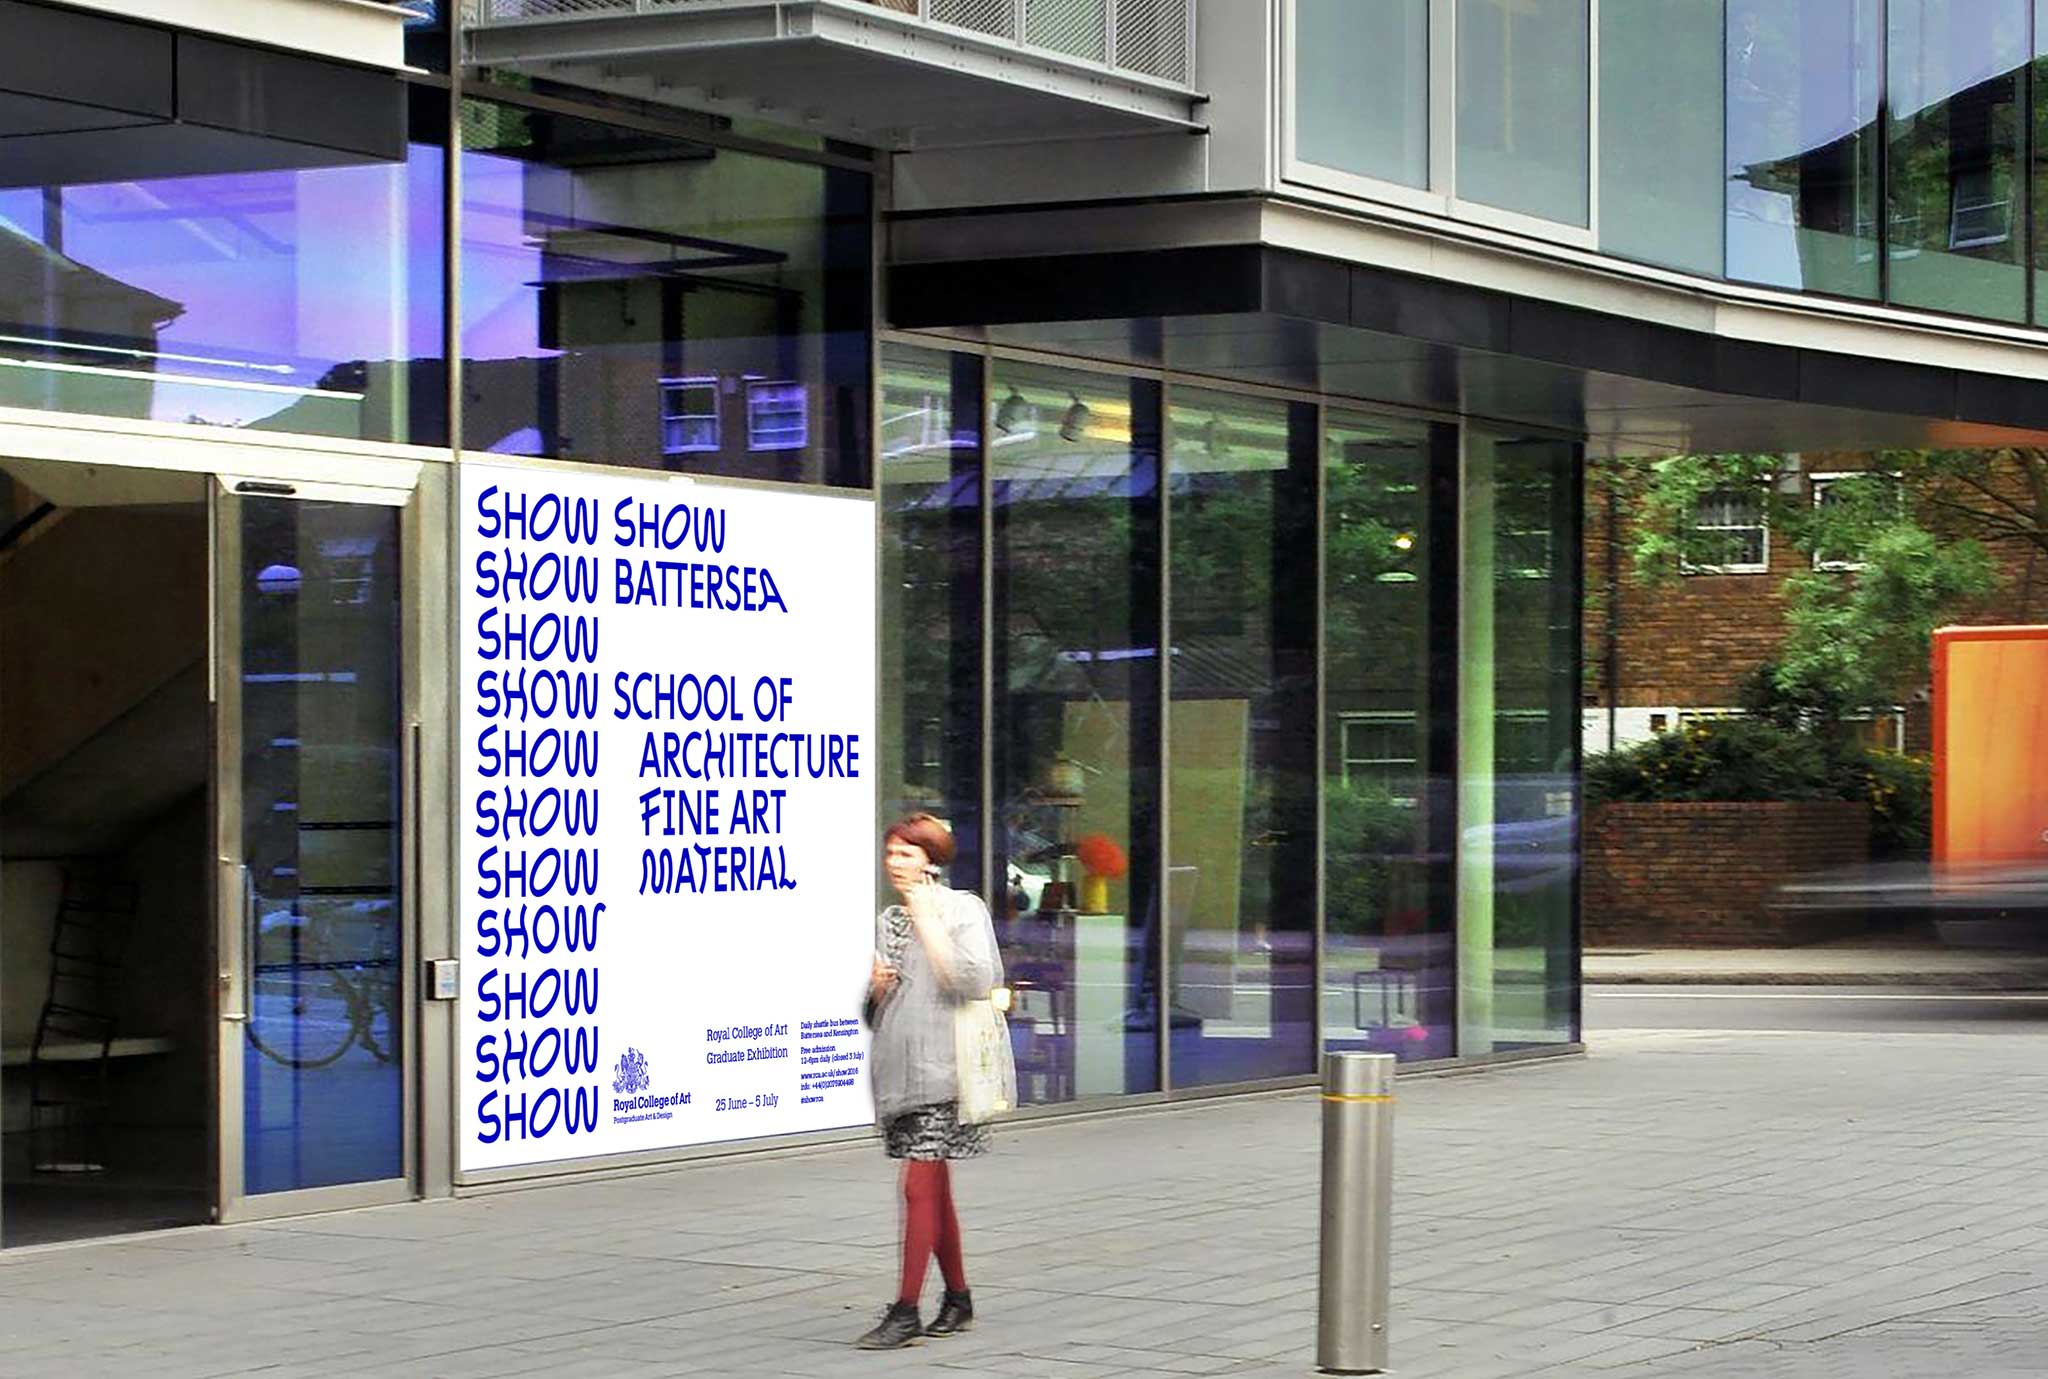 Royal College of Art show 2016 battersea